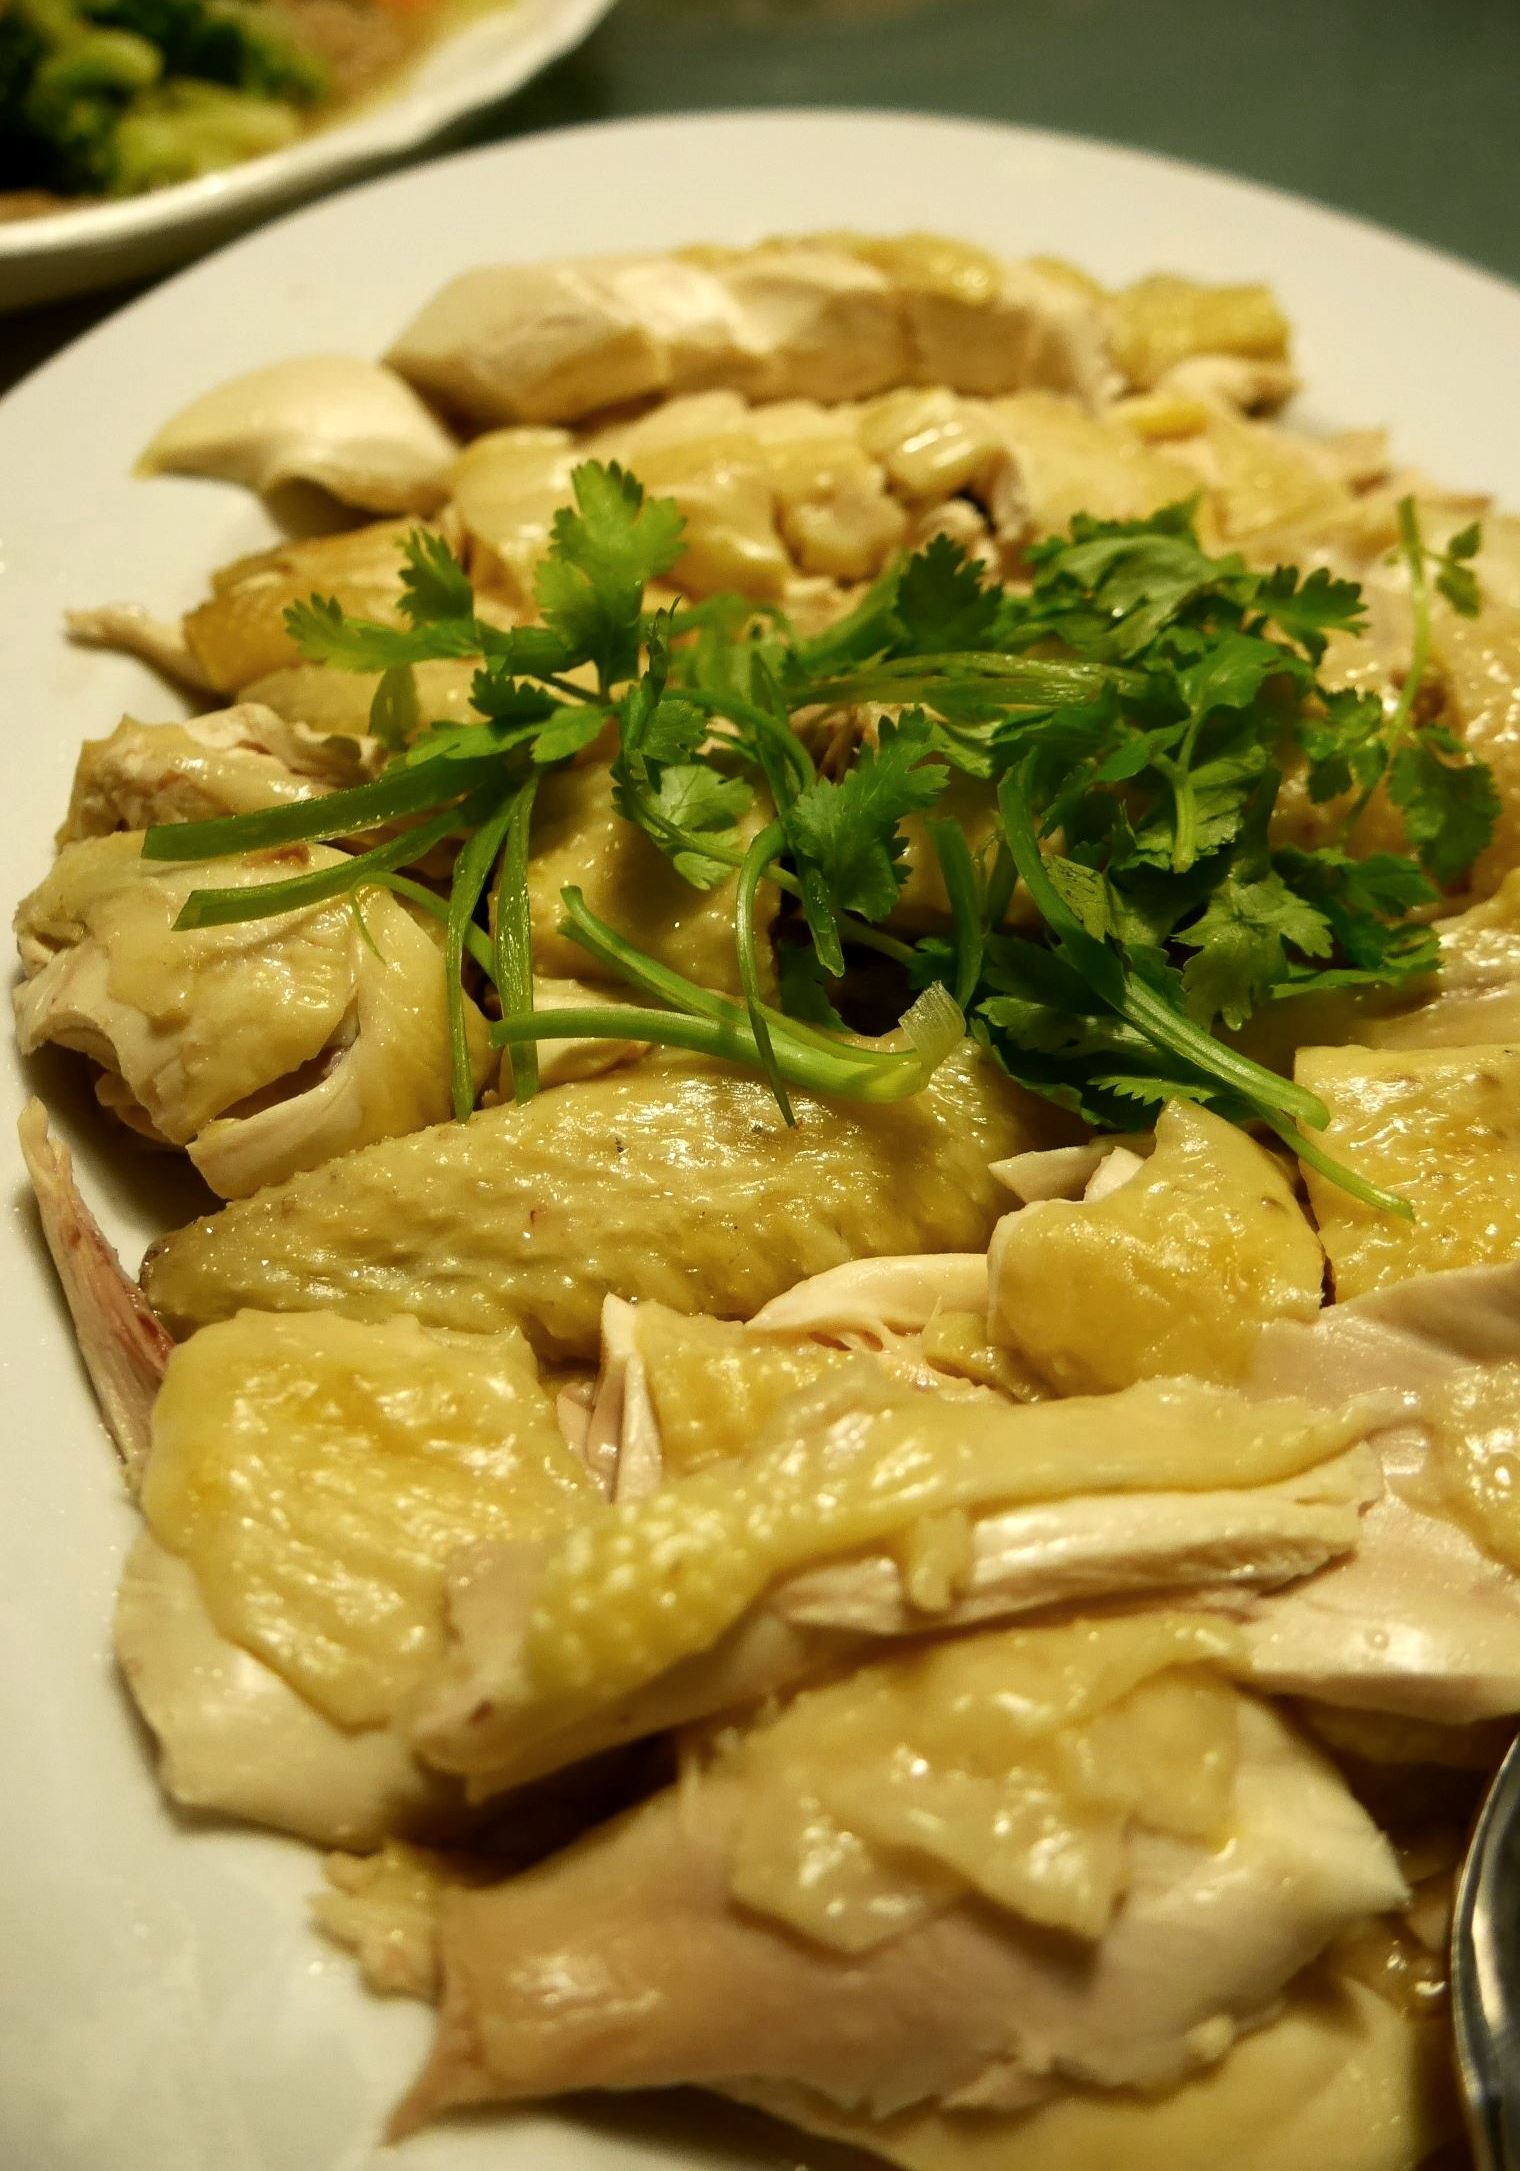 Cantonese style white cooked chicken